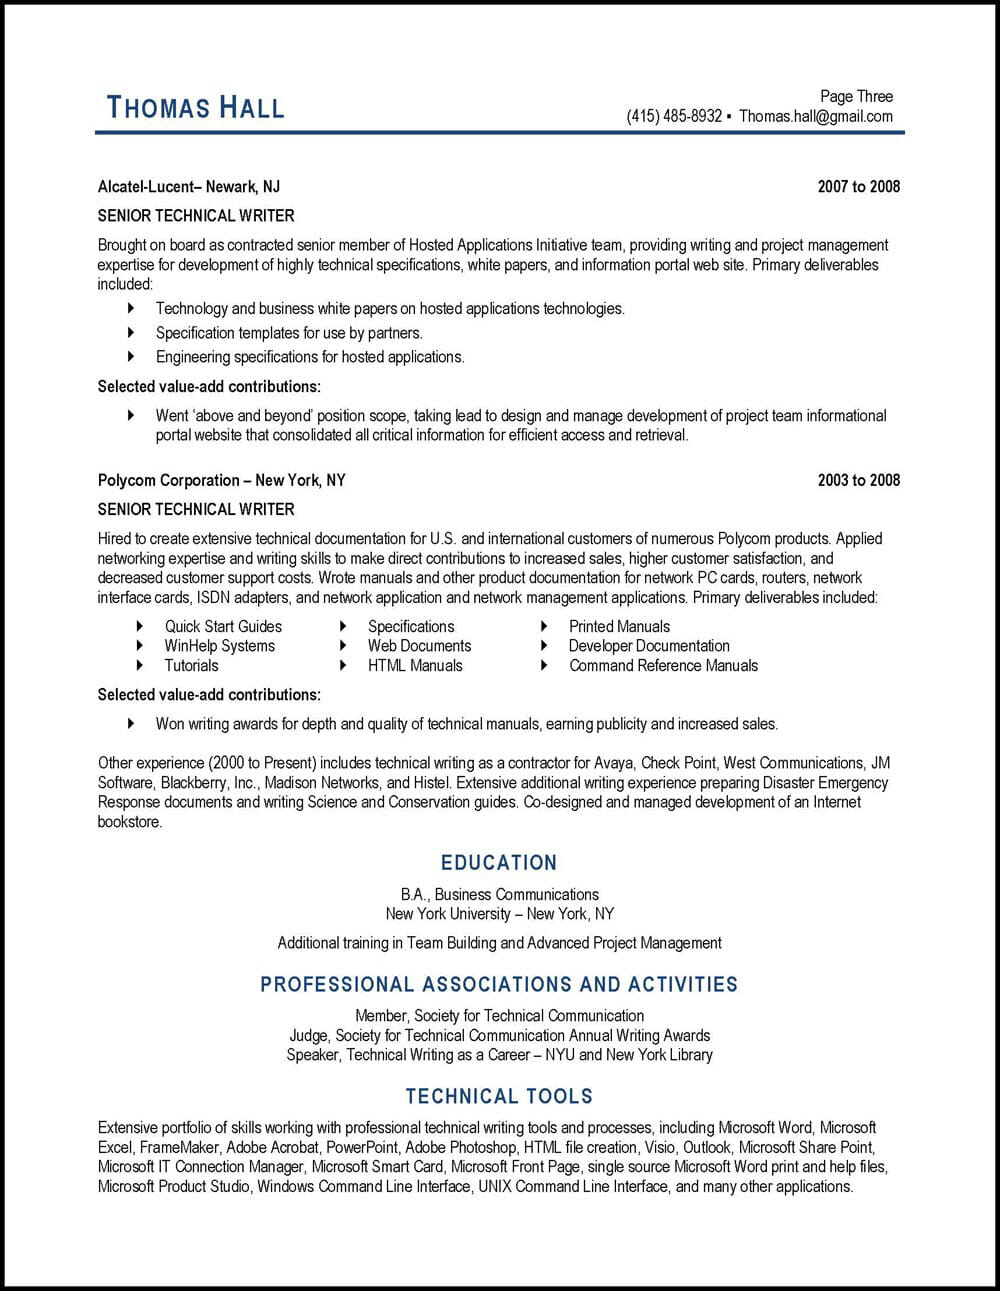 technical writer resume example distinctive career services professional examples writing Resume Professional Resume Examples Resume Writing